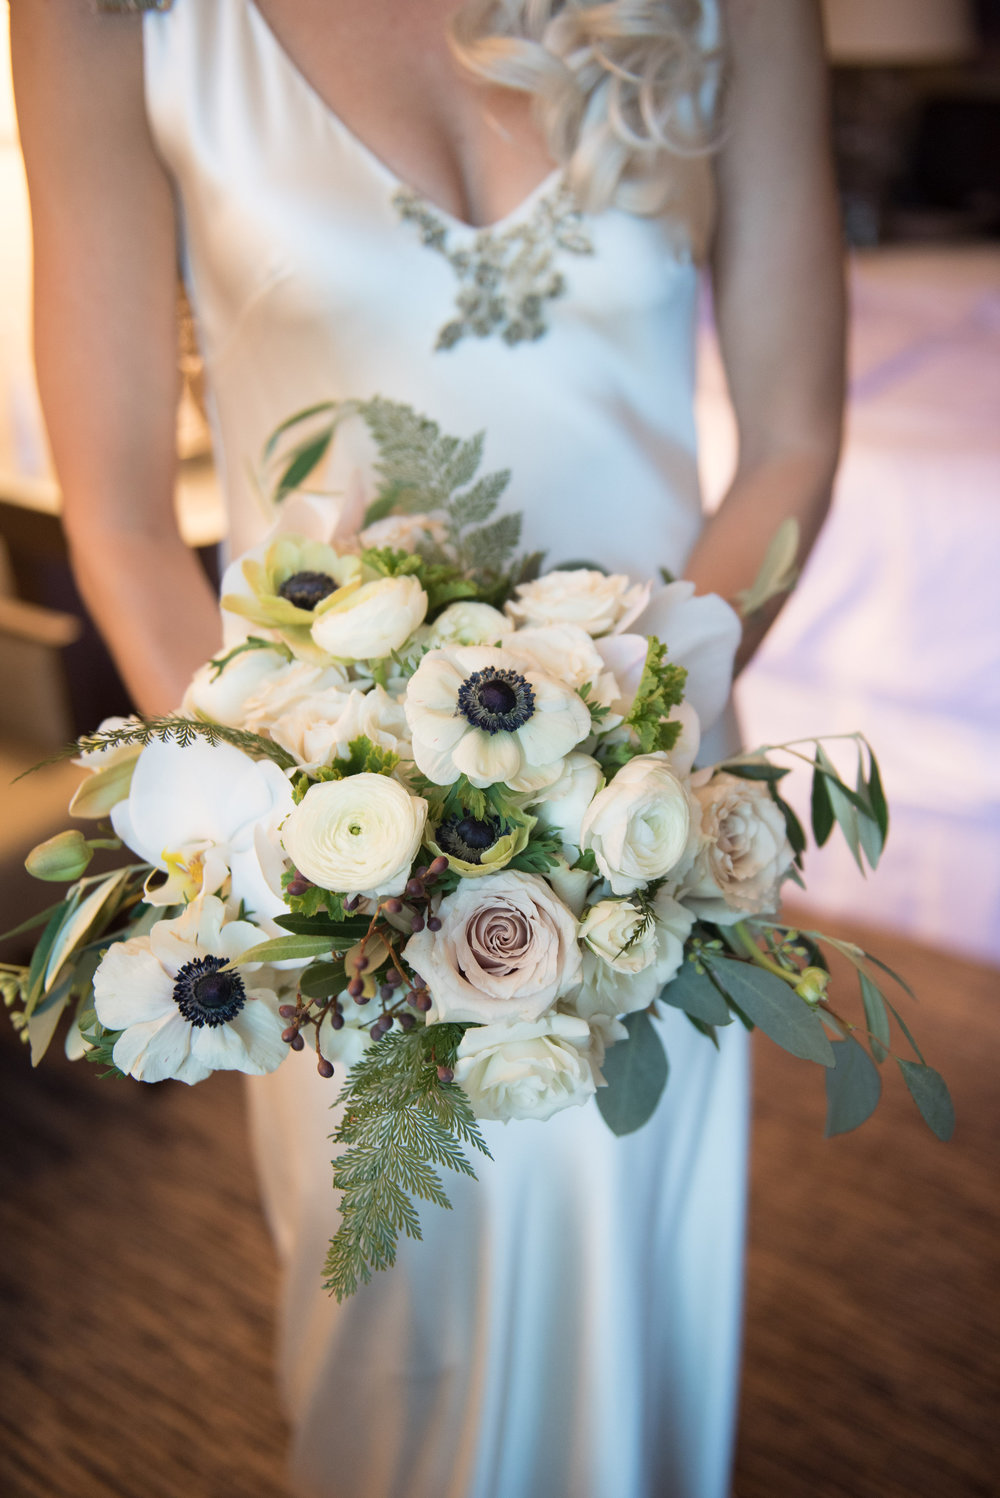 White anemone bridal bouquet designed by Fleur Inc at Thalia Hall.  Photographed by Gerber & Scarpelli Photography